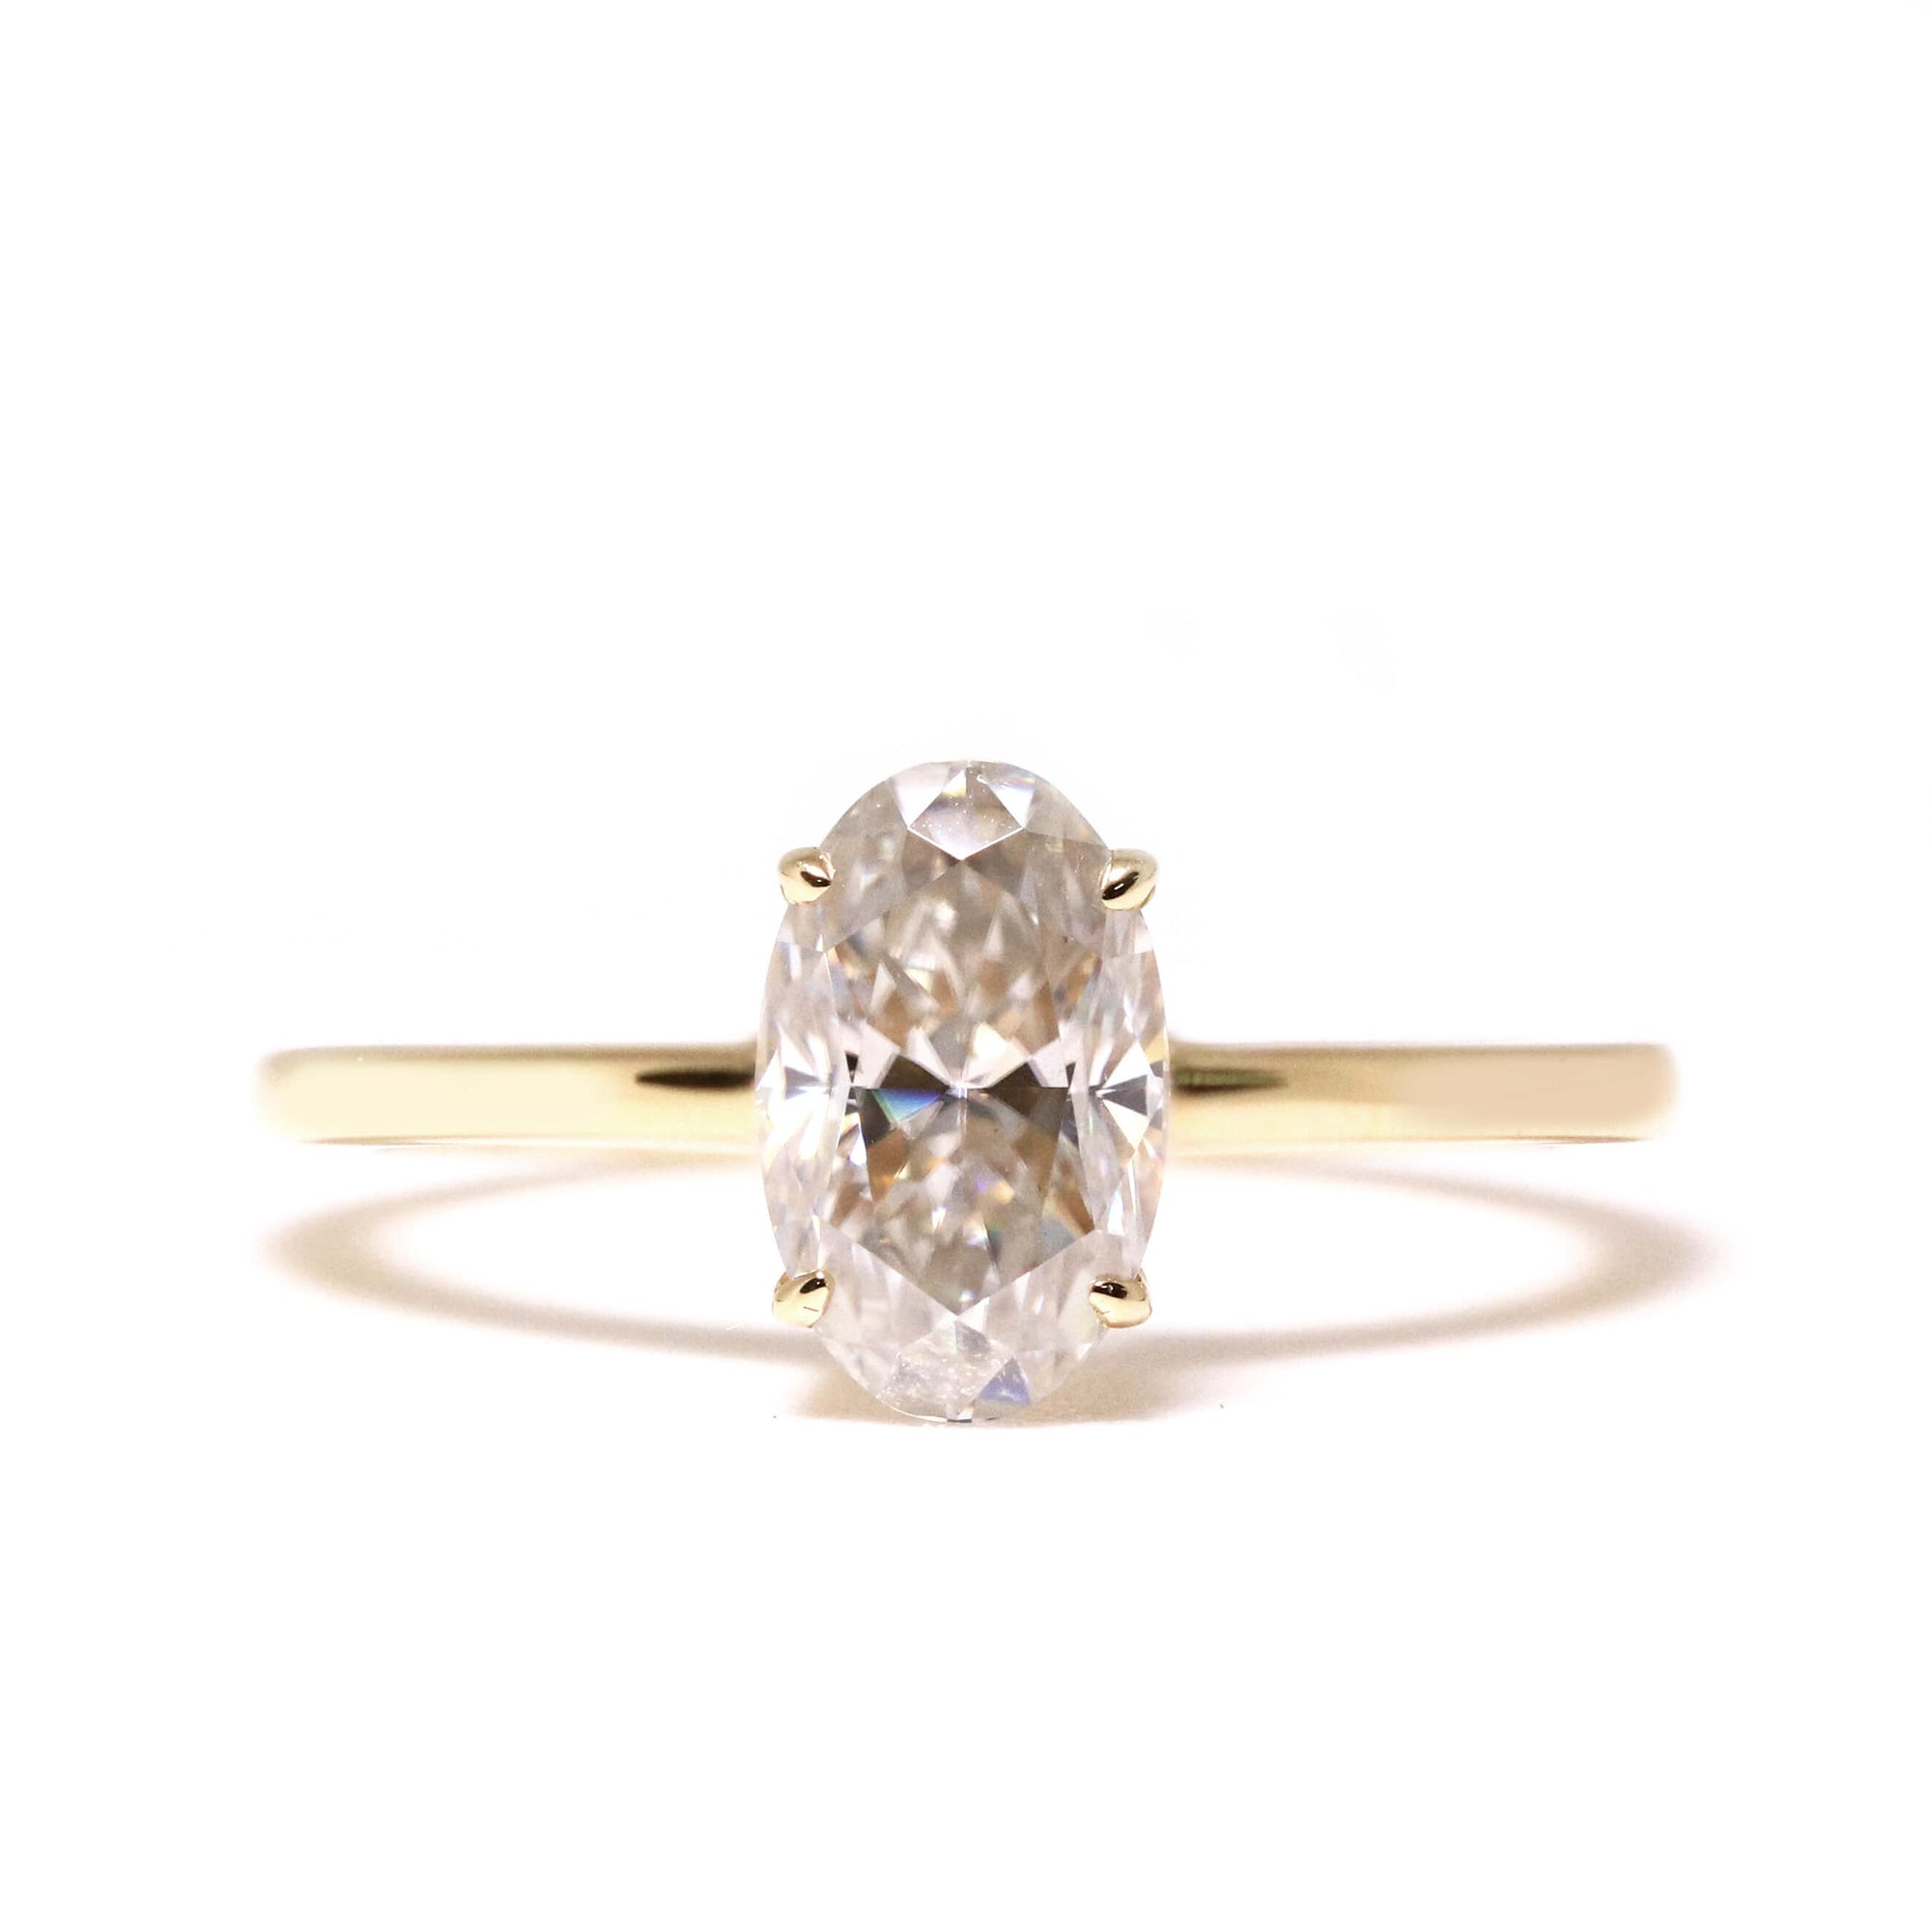 1 Carat Oval Moissanite Ring in 18K Yellow Gold Ring - LeCaine Gems